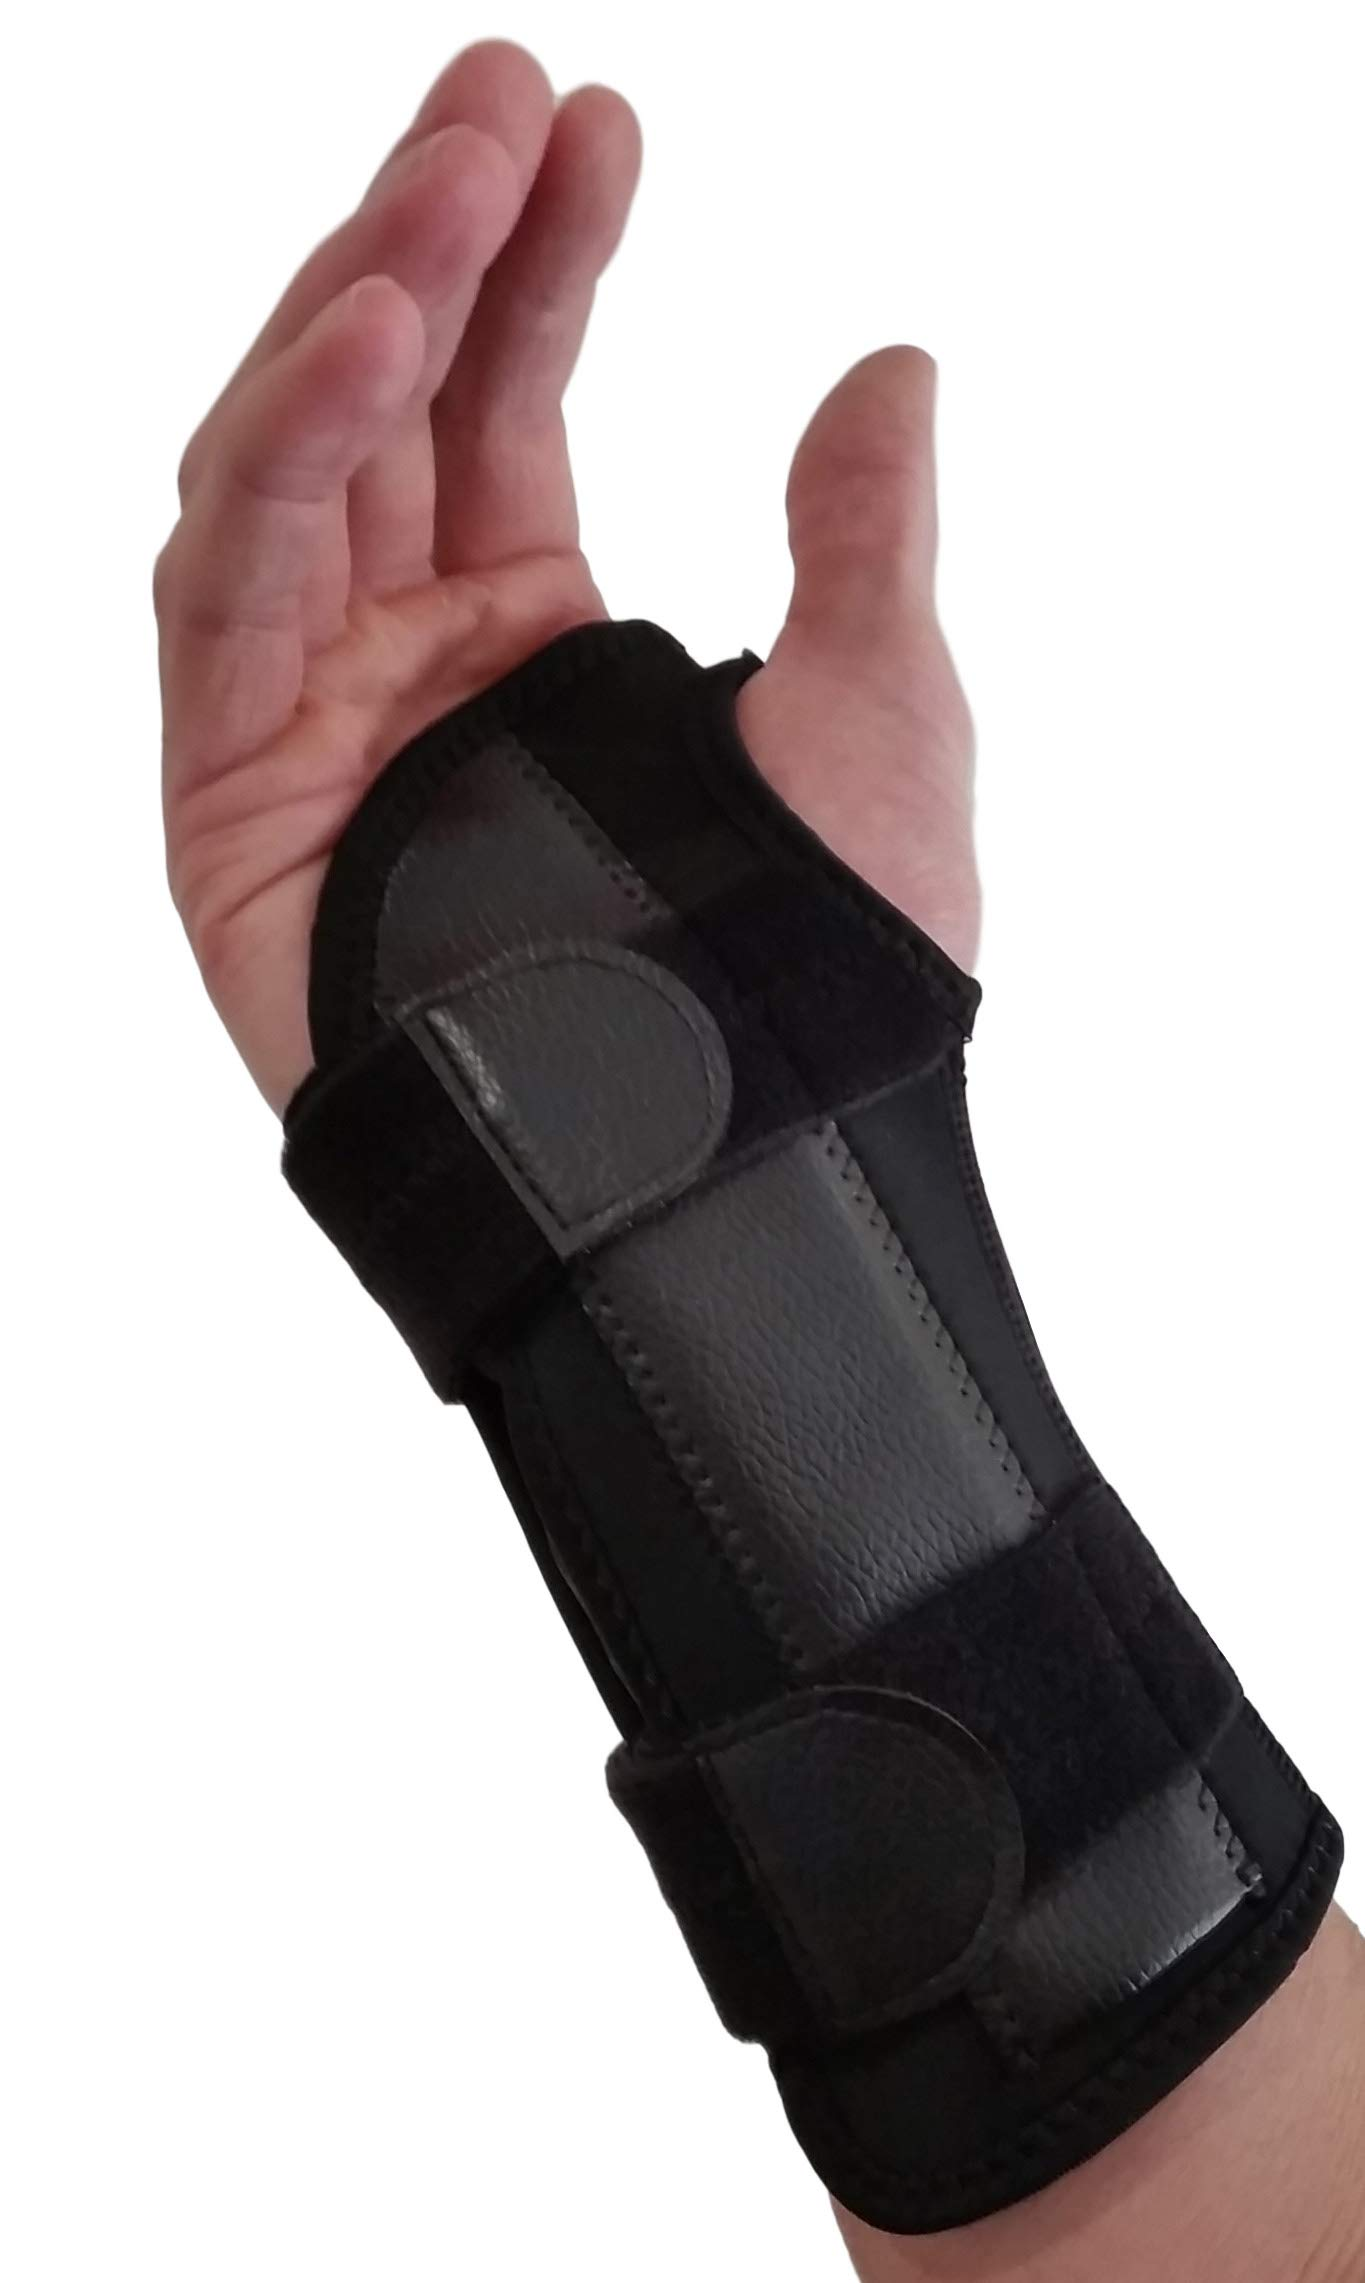 Carpal Tunnel Wrist Brace Night Support - Wrist Splint Arm Stabilizer & Hand Brace for Carpal Tunnel Syndrome Pain Relief with Compression Sleeve for Forearm or Wrist Tendonitis Pain Treatment (Right) by ARMSTRONG AMERIKA